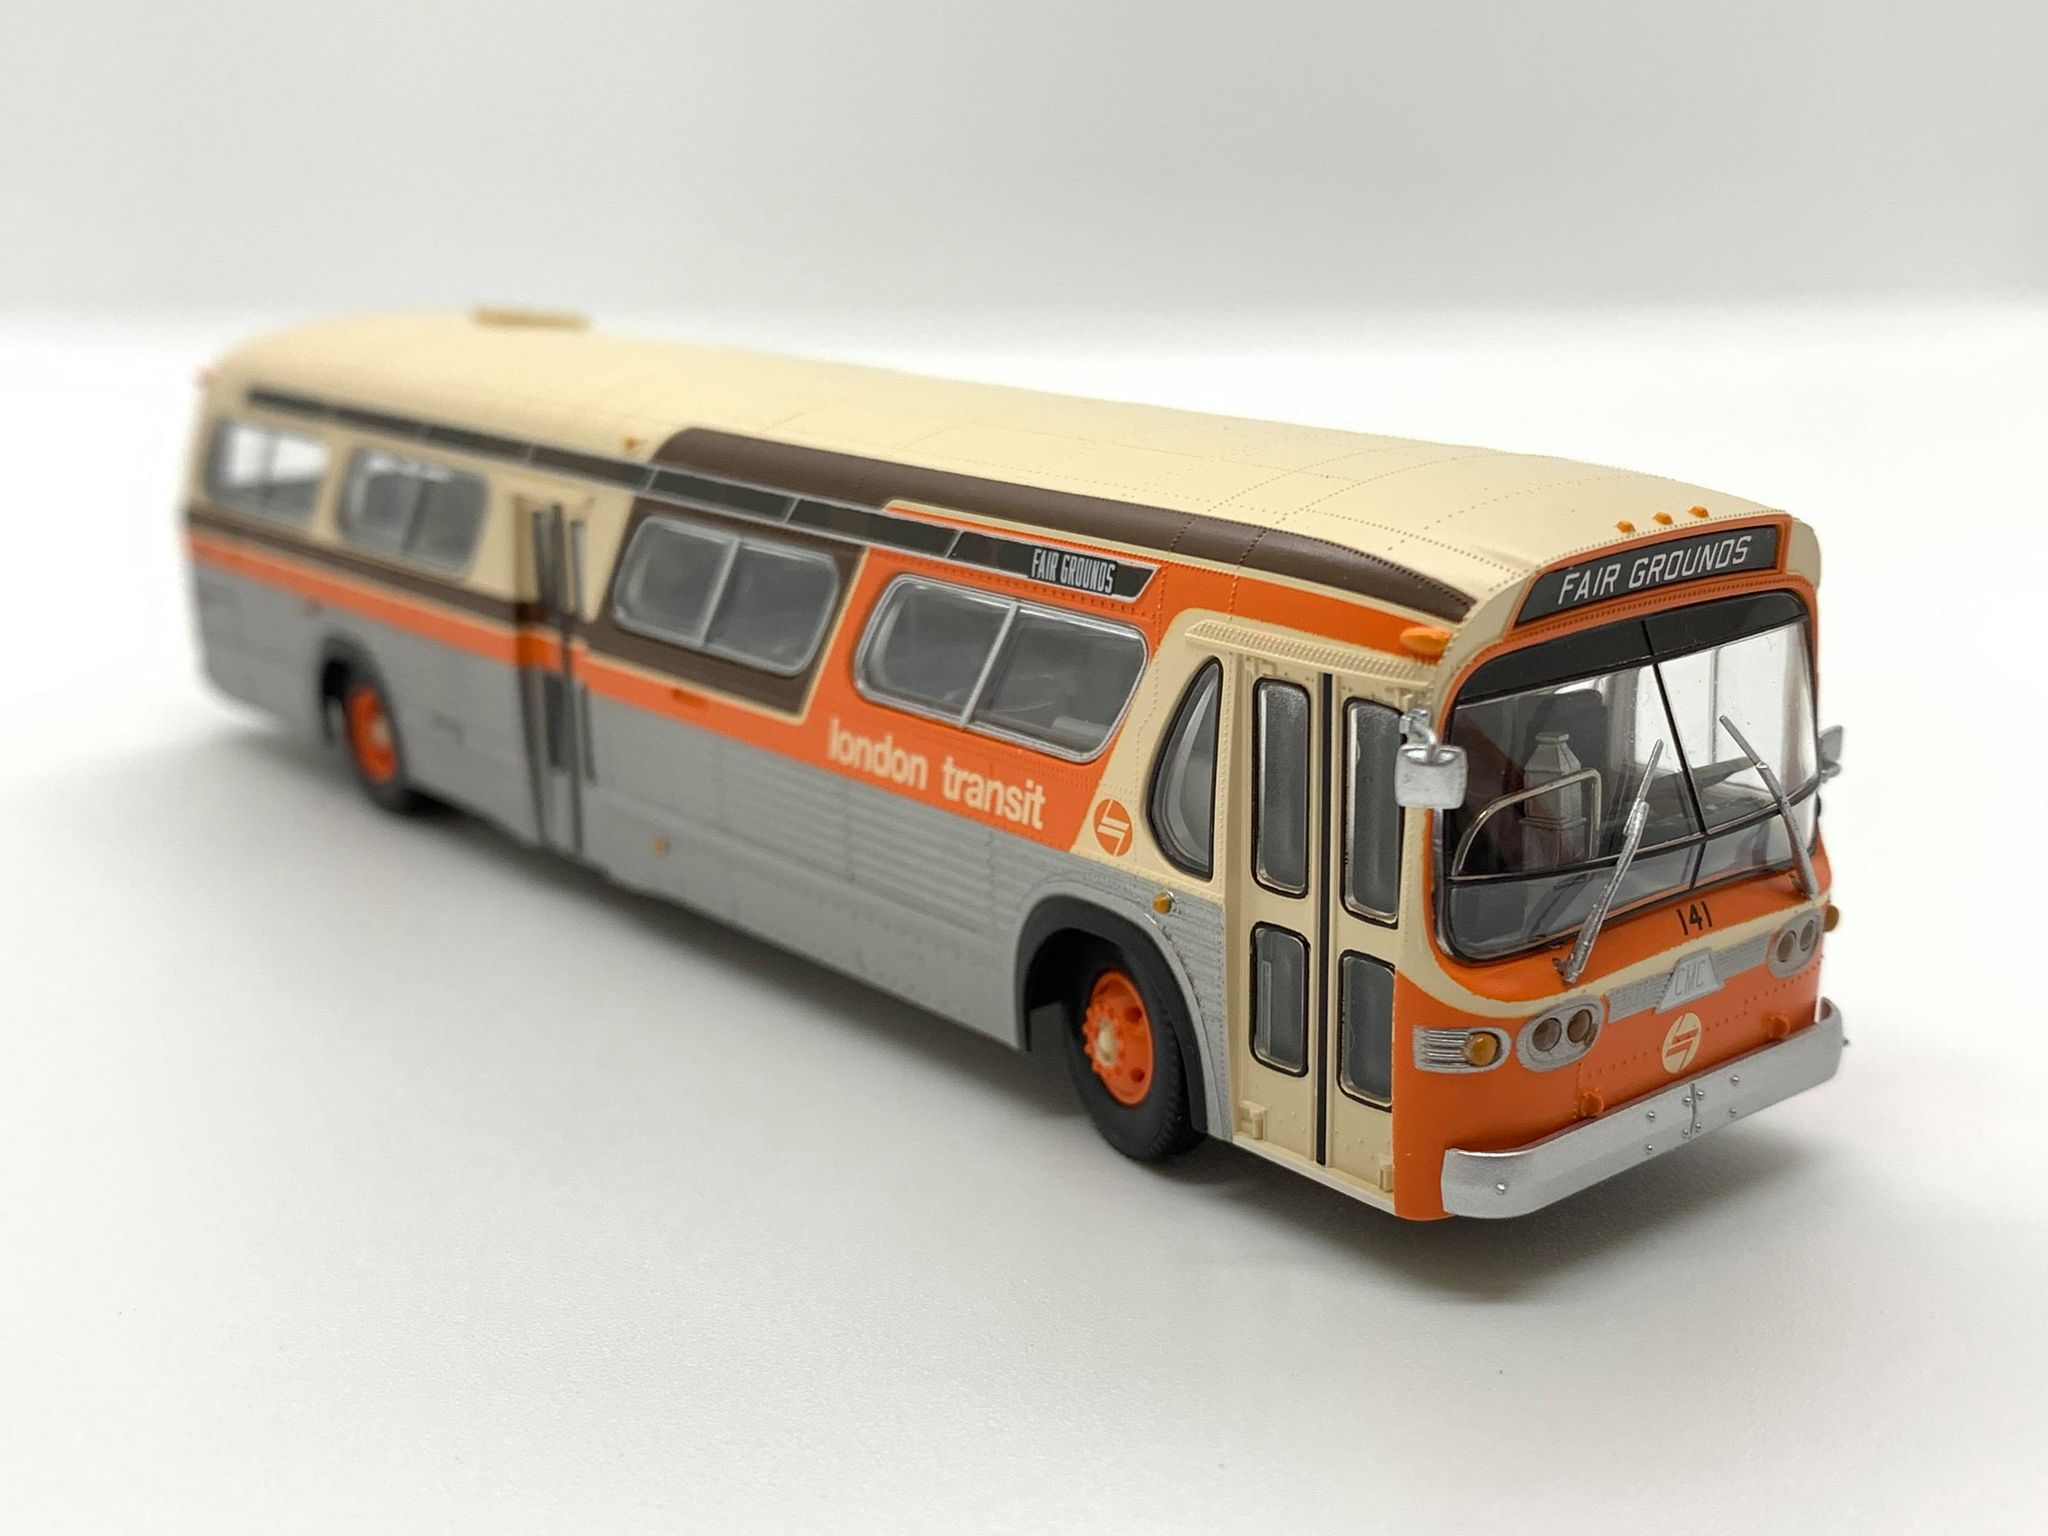 Rapido Trains 753097 HO New Look Bus Exclusive London Transit Commission (Orange/Brown)#141 Fair Grounds Deluxe